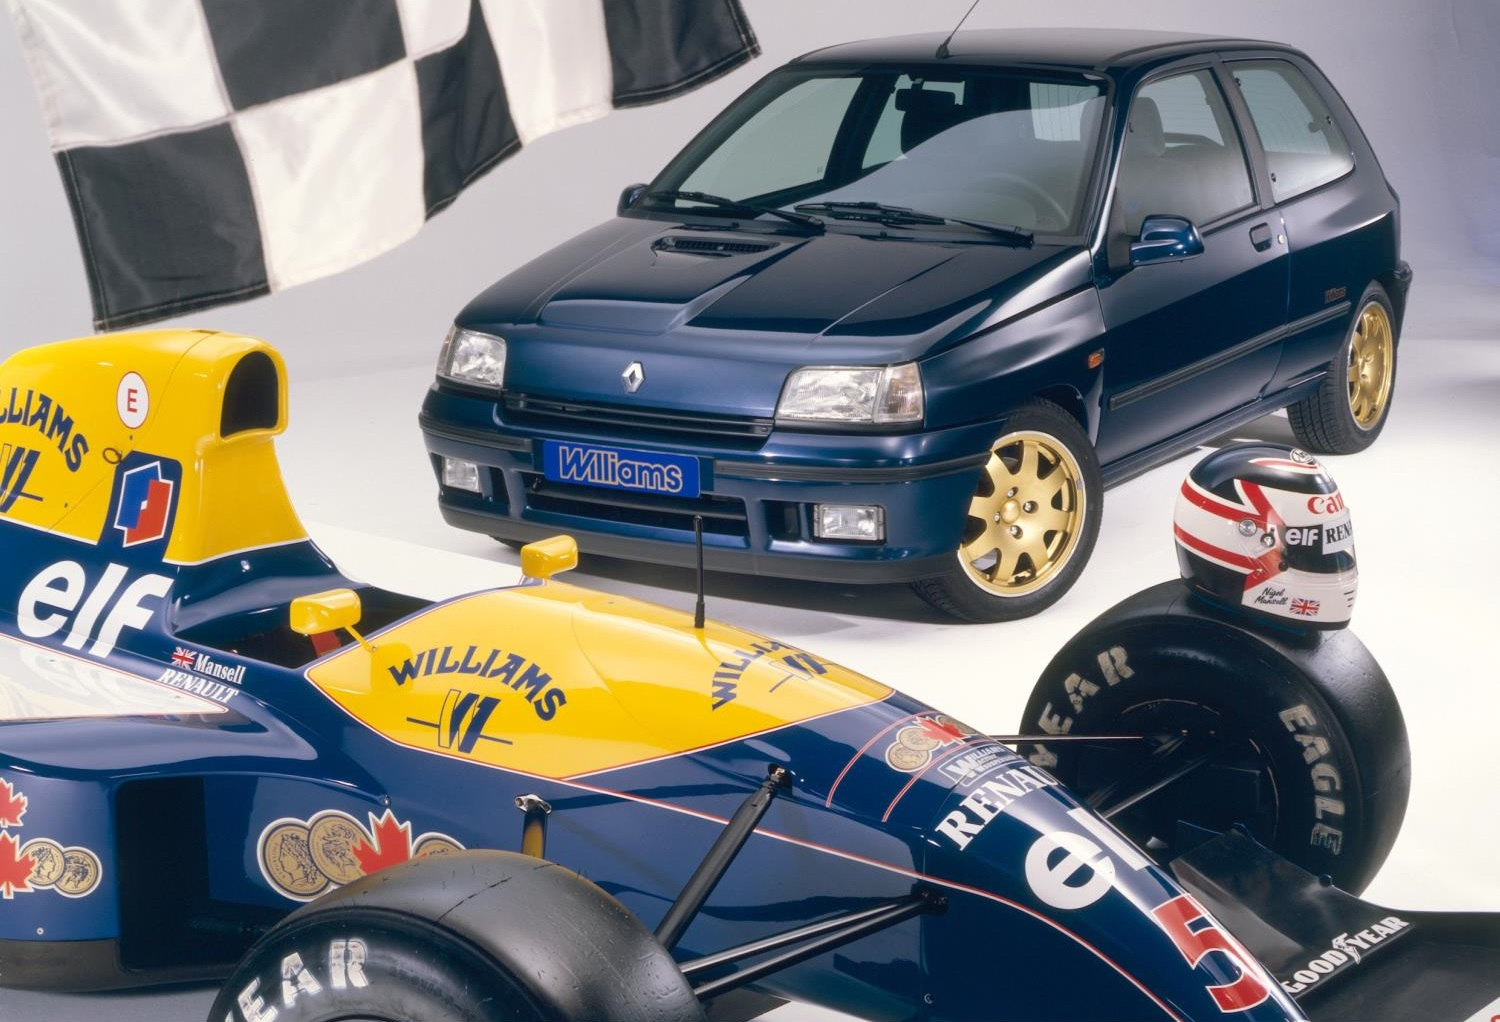 Clio I Williams